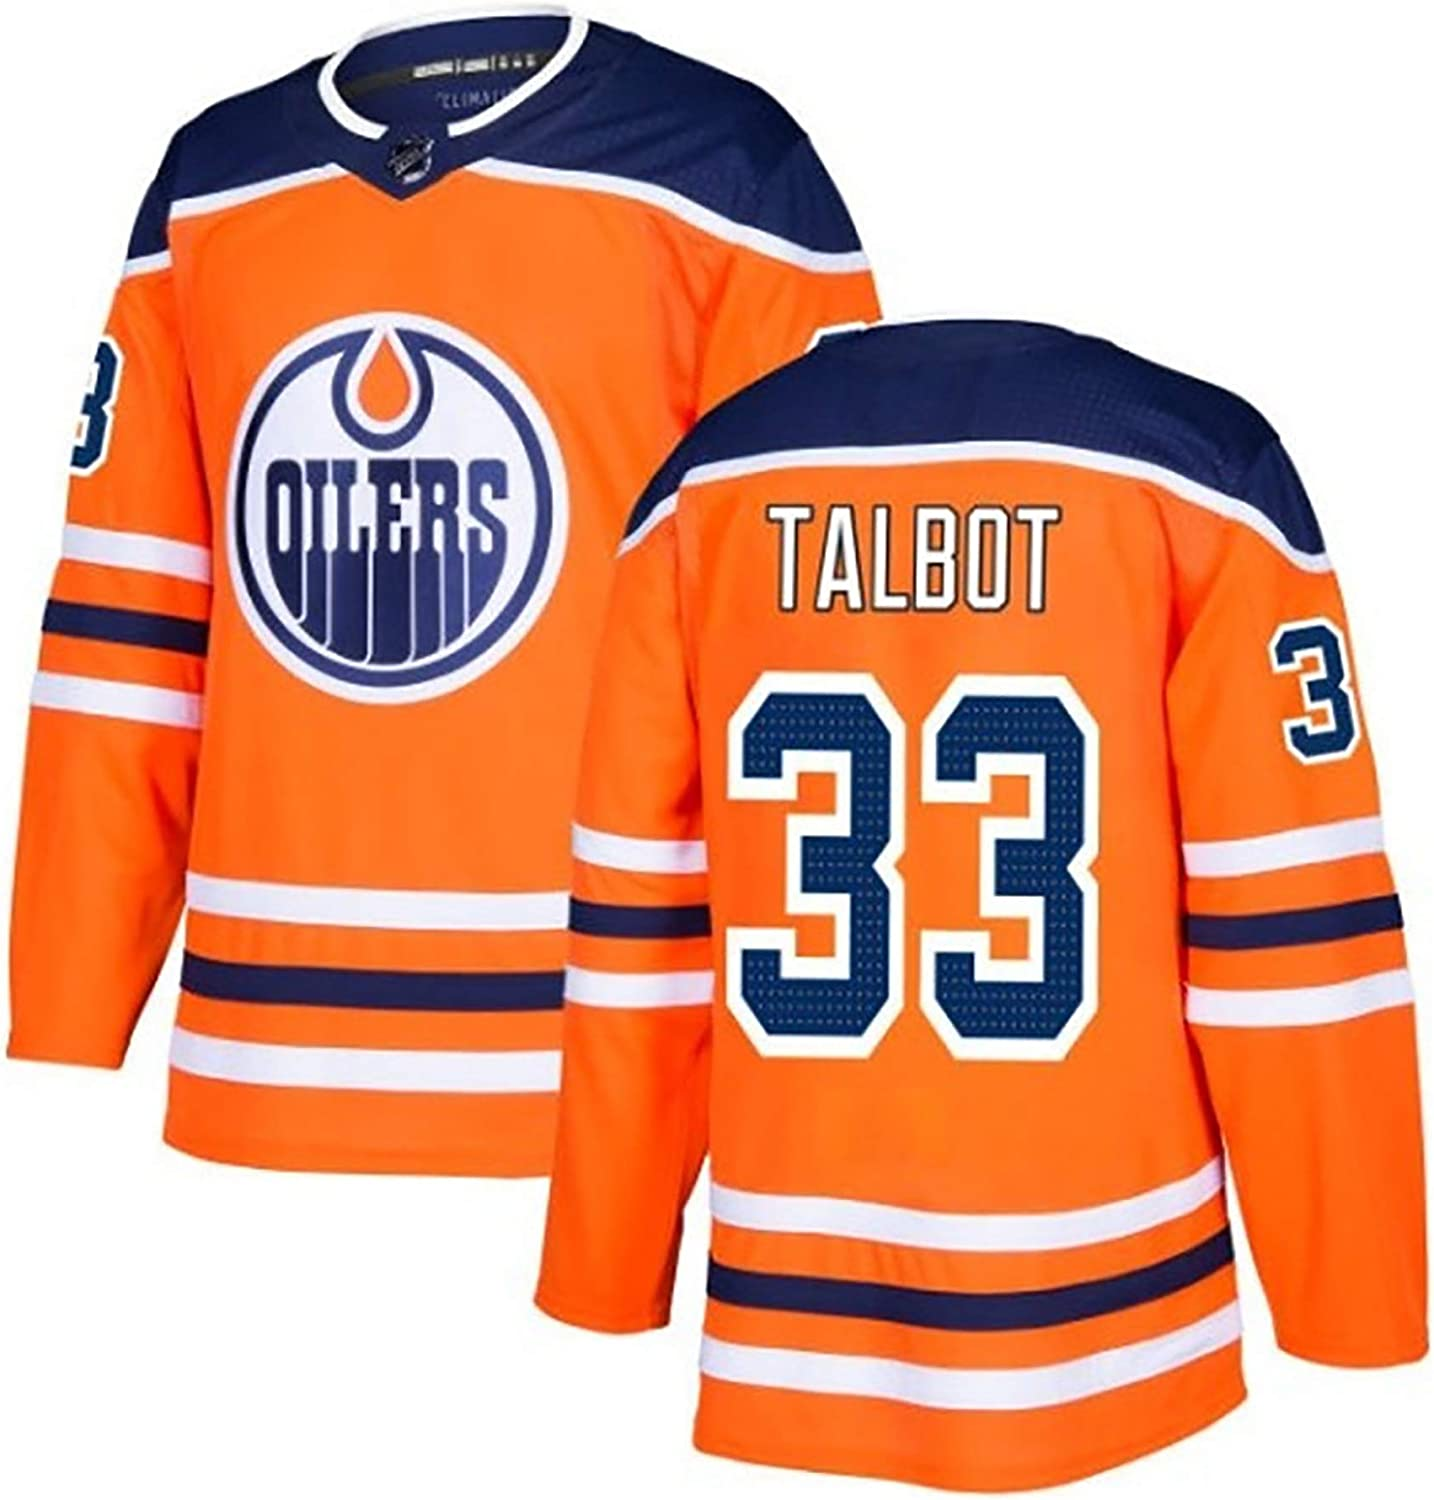 Mens Hockey Jersey Quality Assurance First Choice for Gifts Oilers TALBOT33 DRAISAITL29 GRETZKY99 LUCIC27 Embroidery Jersey